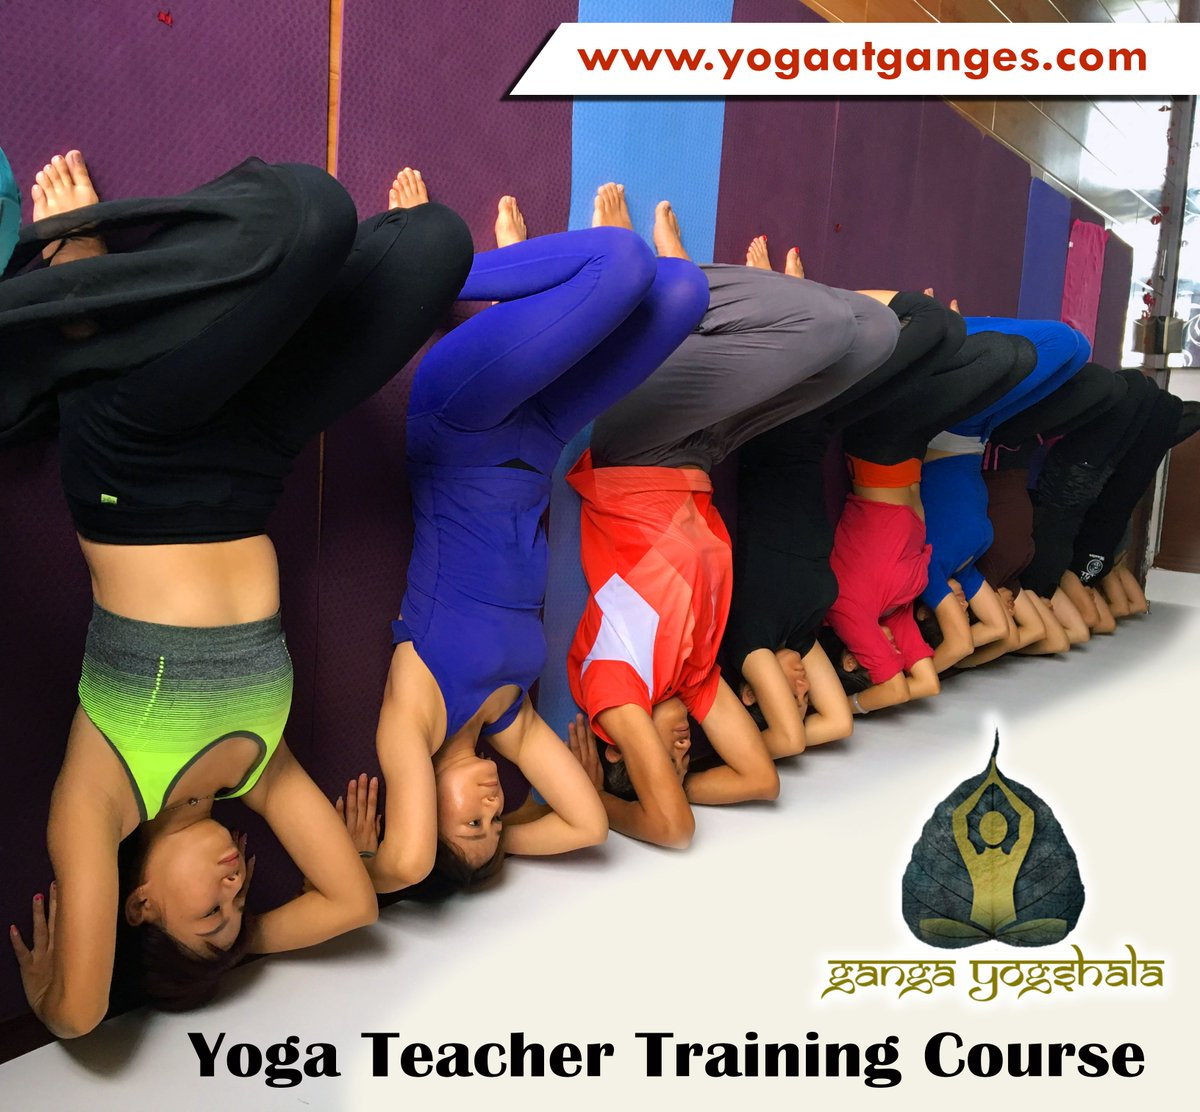 #200_hour #yoga #teacher_training_course program which is overlooked by the expert #yogis. it is one of the #professional as well as personal #development opportunities for the #students. #rishikesh is a place which is known for the soulful experience it offers to the travelers.